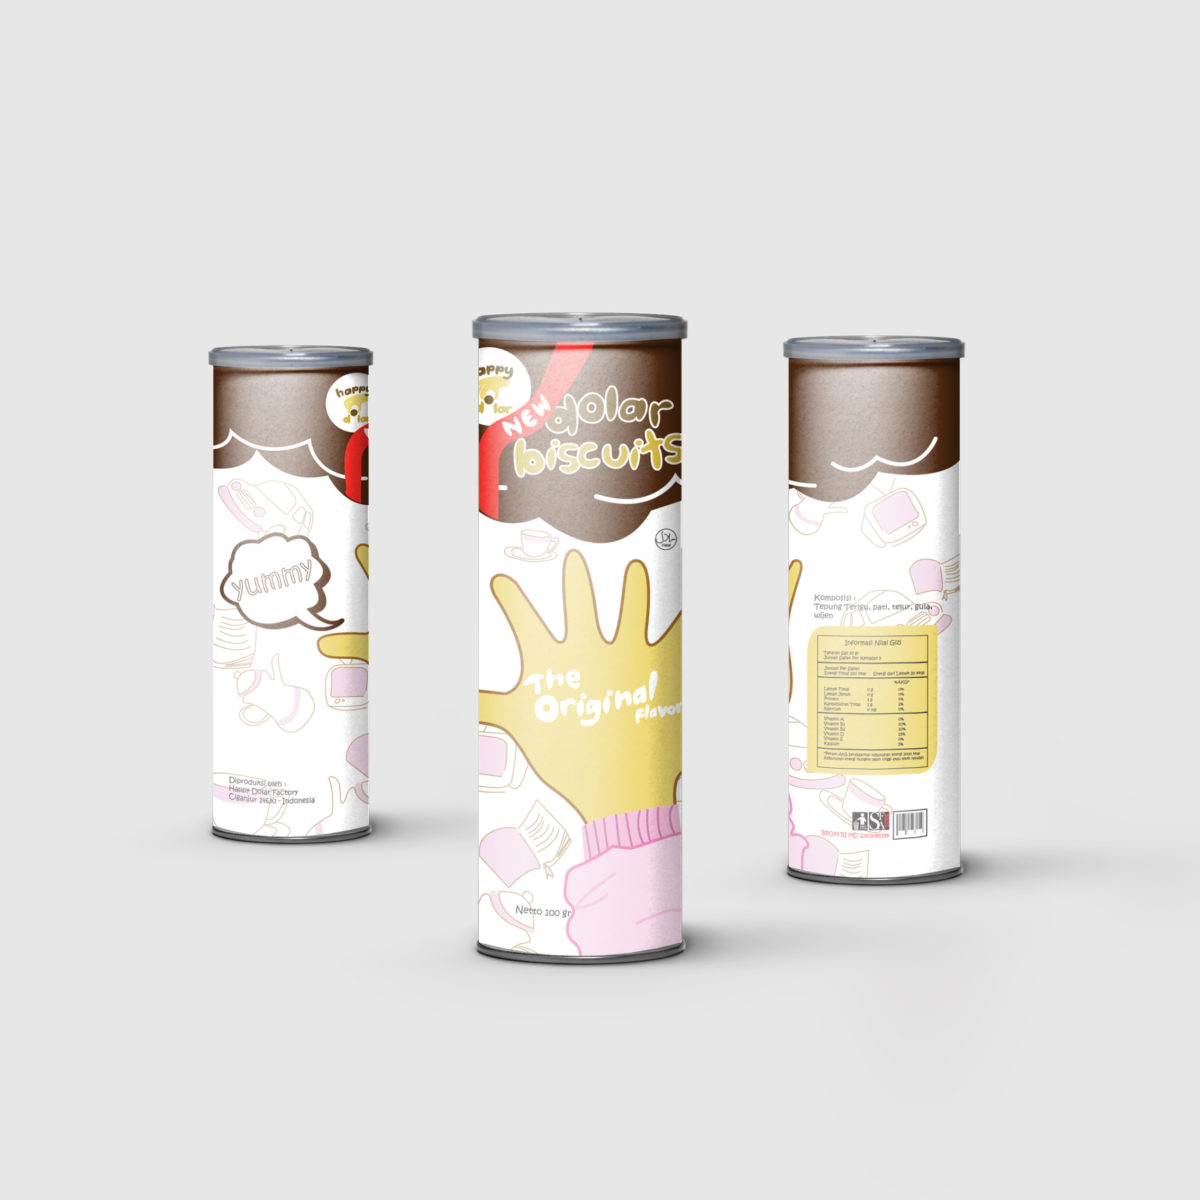 favourite_Happy Dolar Packaging Mockup